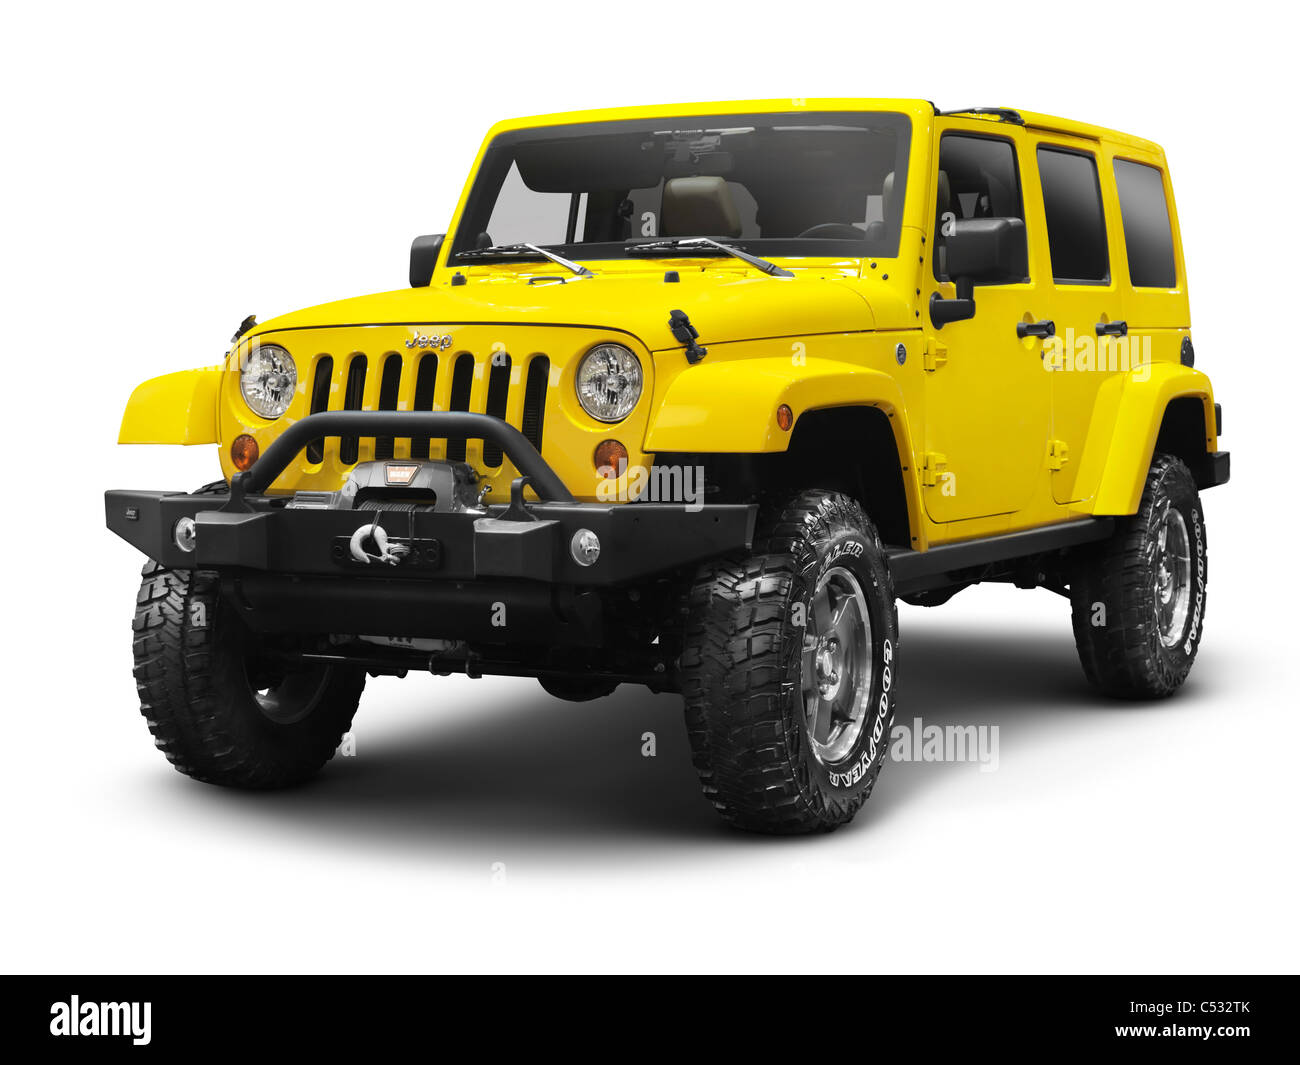 Yellow Jeep Wrangler Unlimited Sahara Suv Isolated On